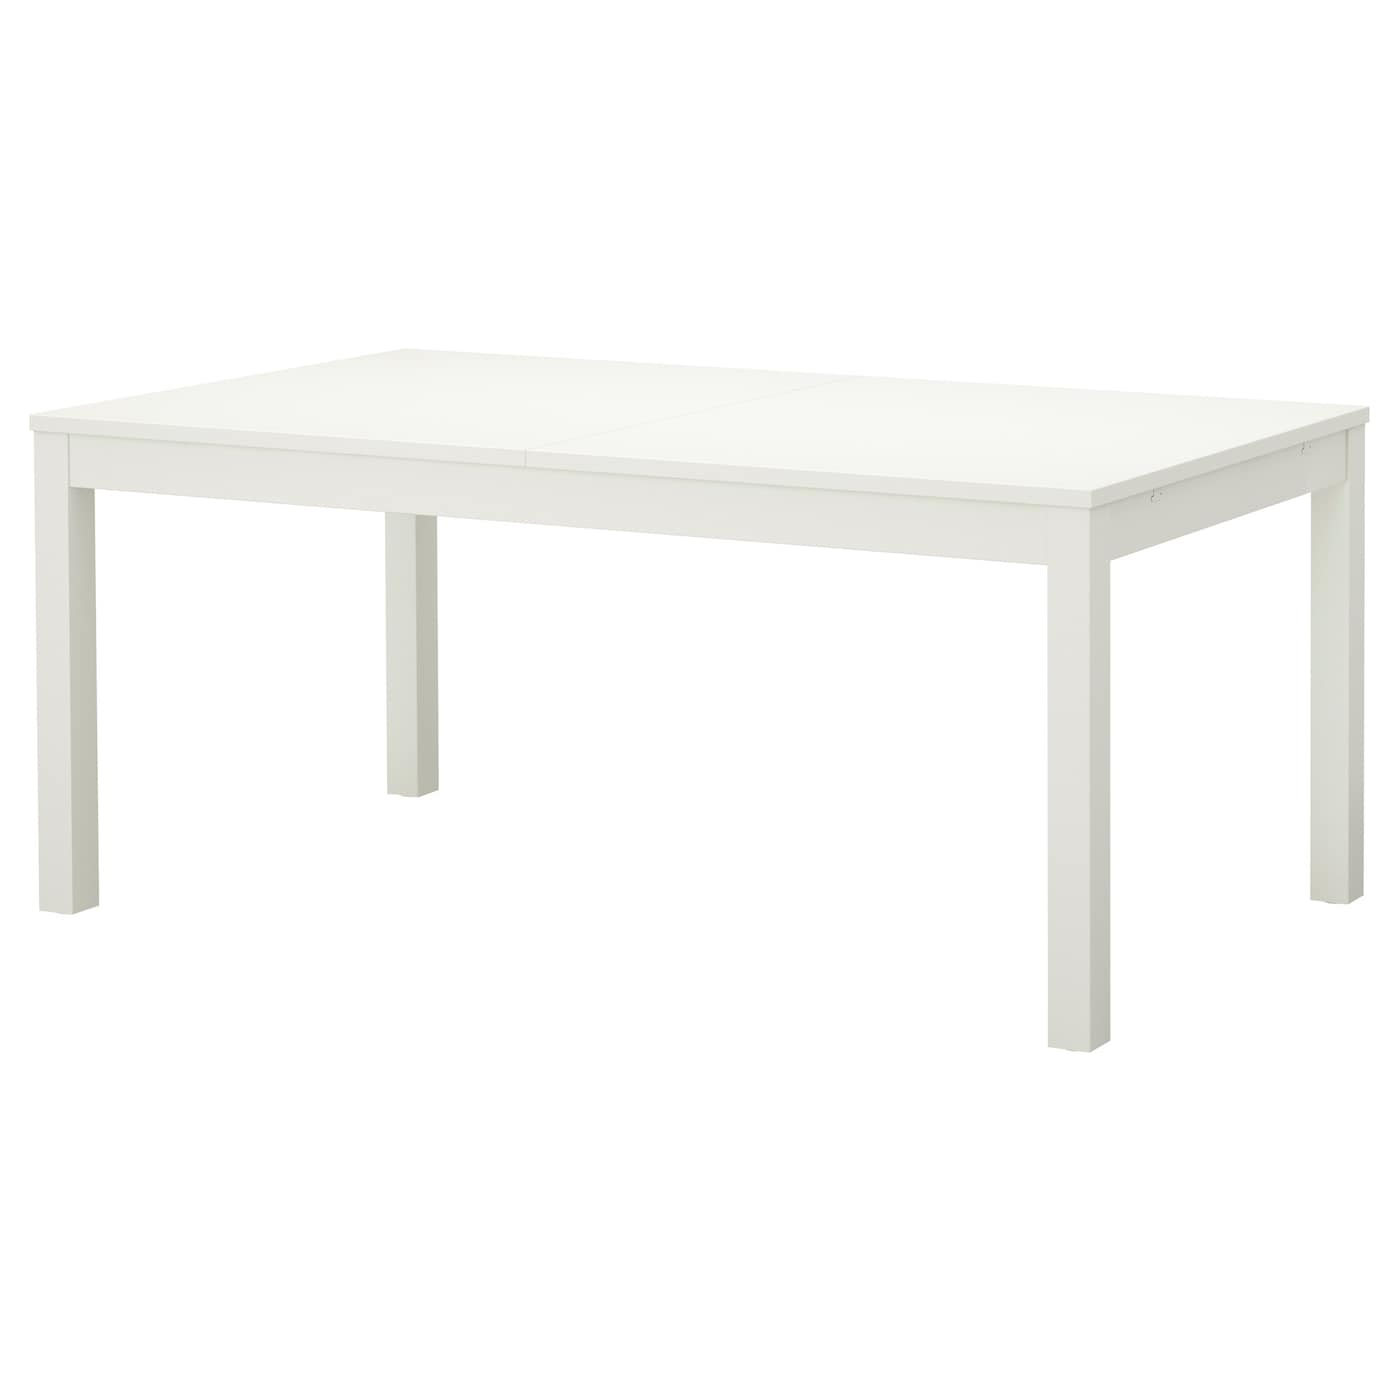 BJURSTA Extendable table White 175 218 260x95 cm IKEA